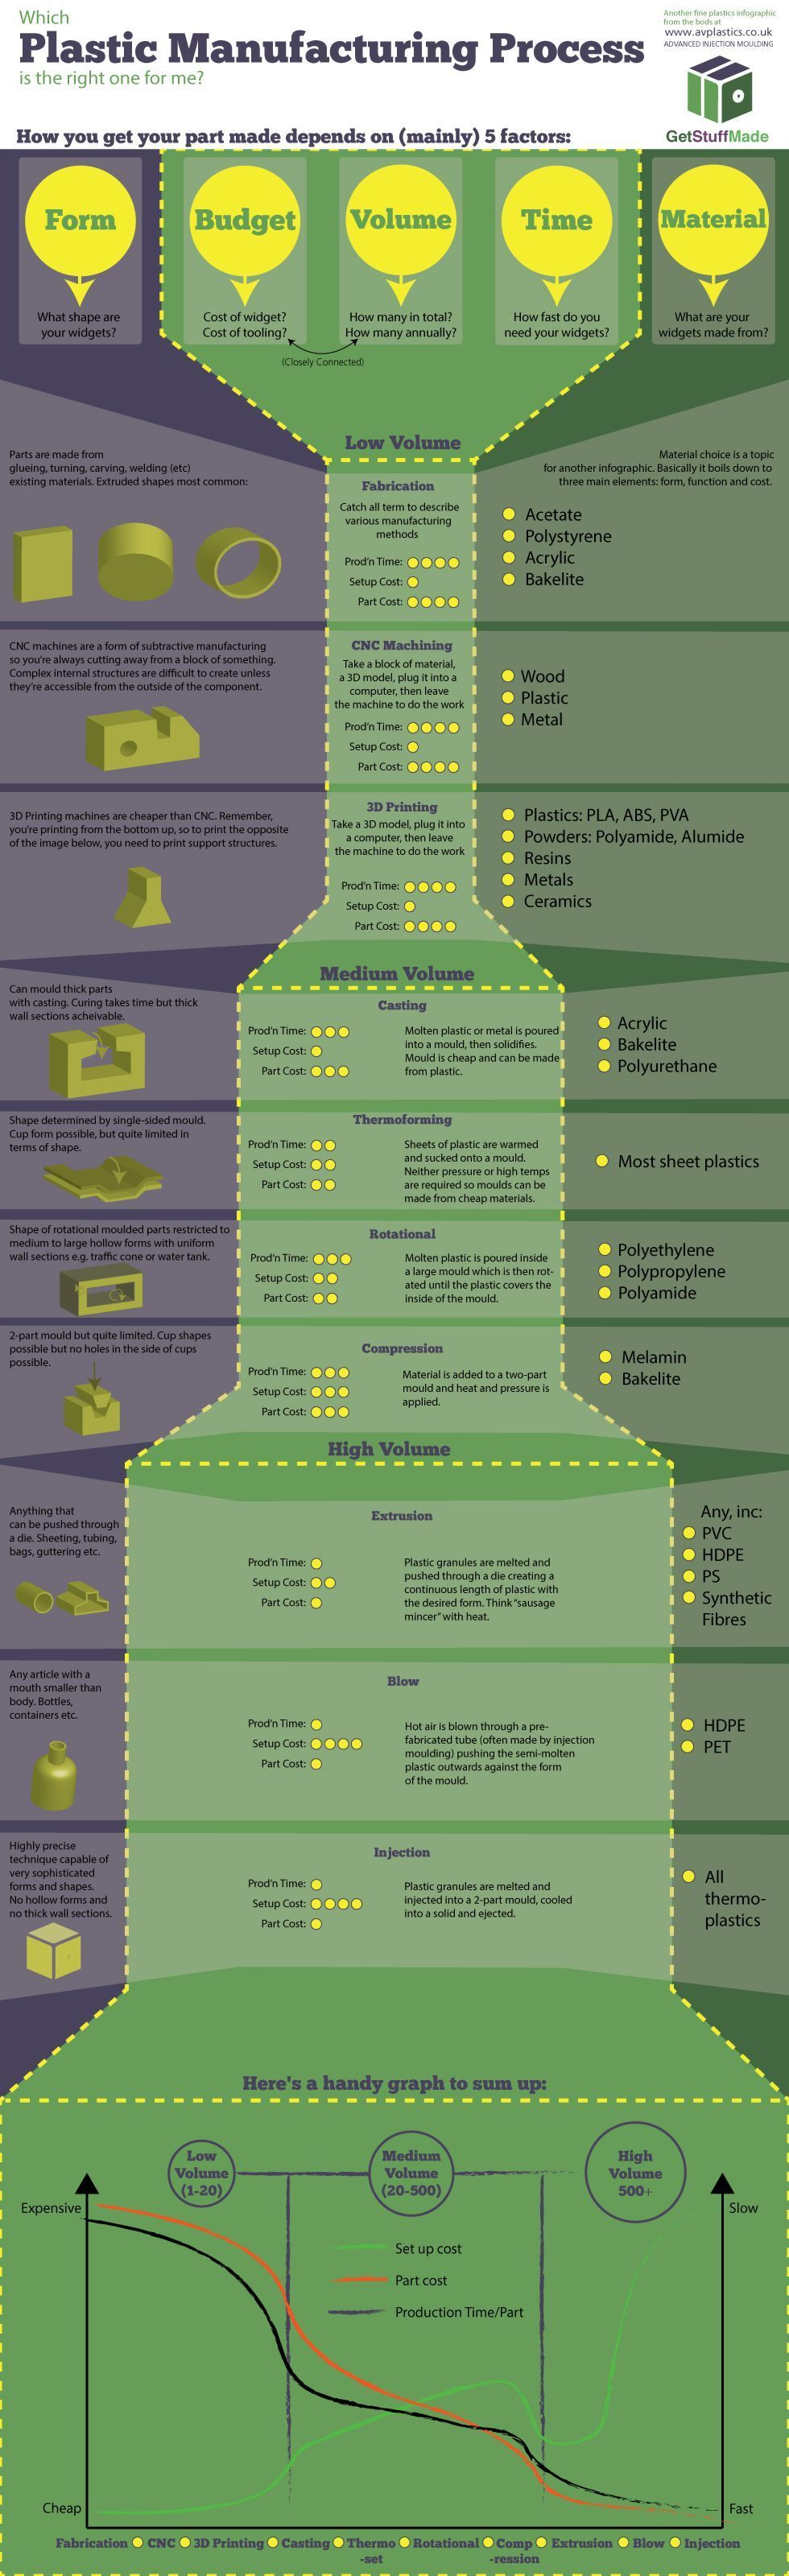 Plastic Manufacturing Process Infographic Blow Compression Injection